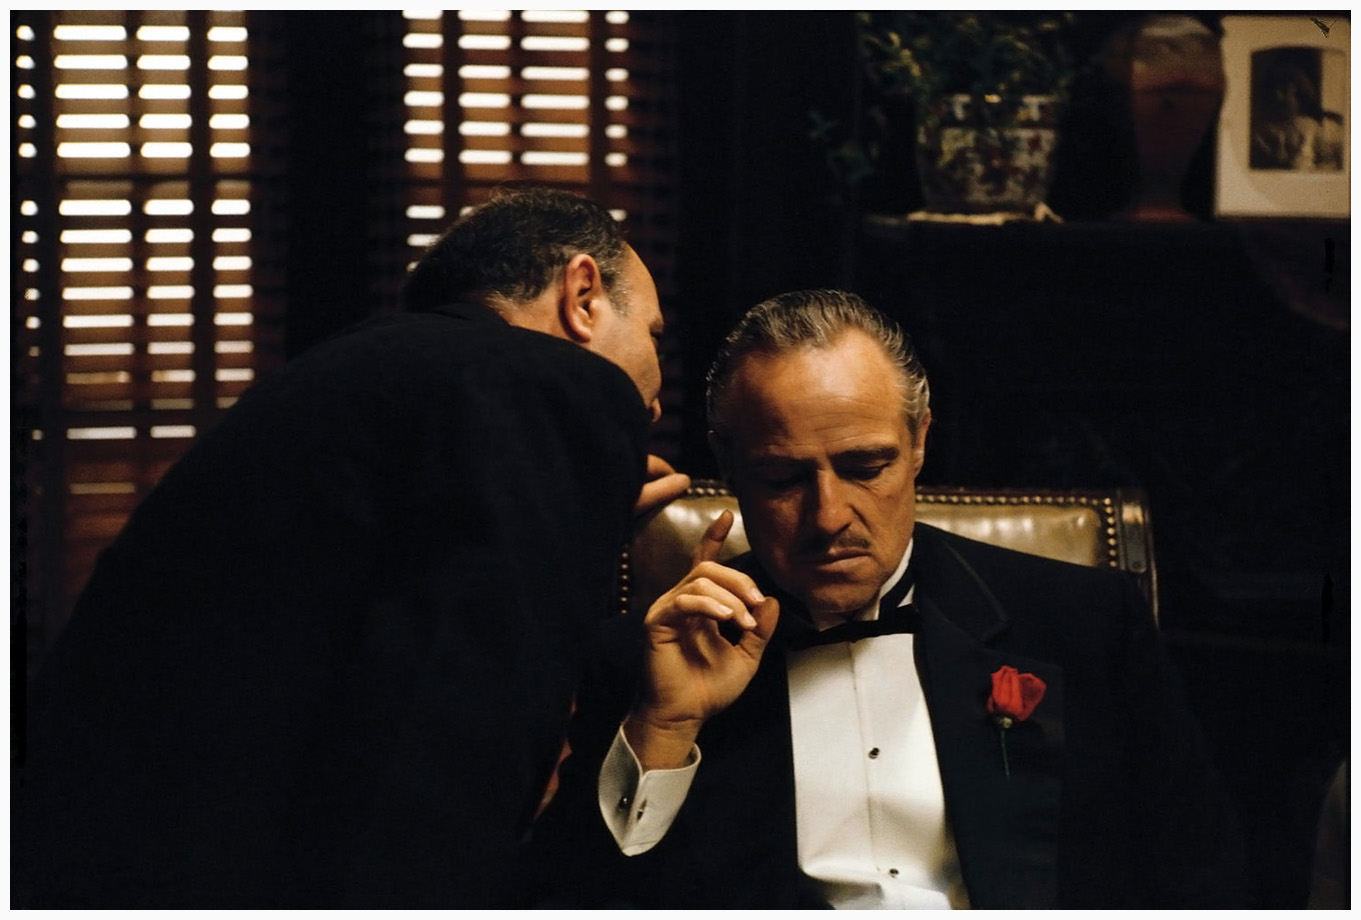 Top 5: Scenes From The Godfather | Killing Time